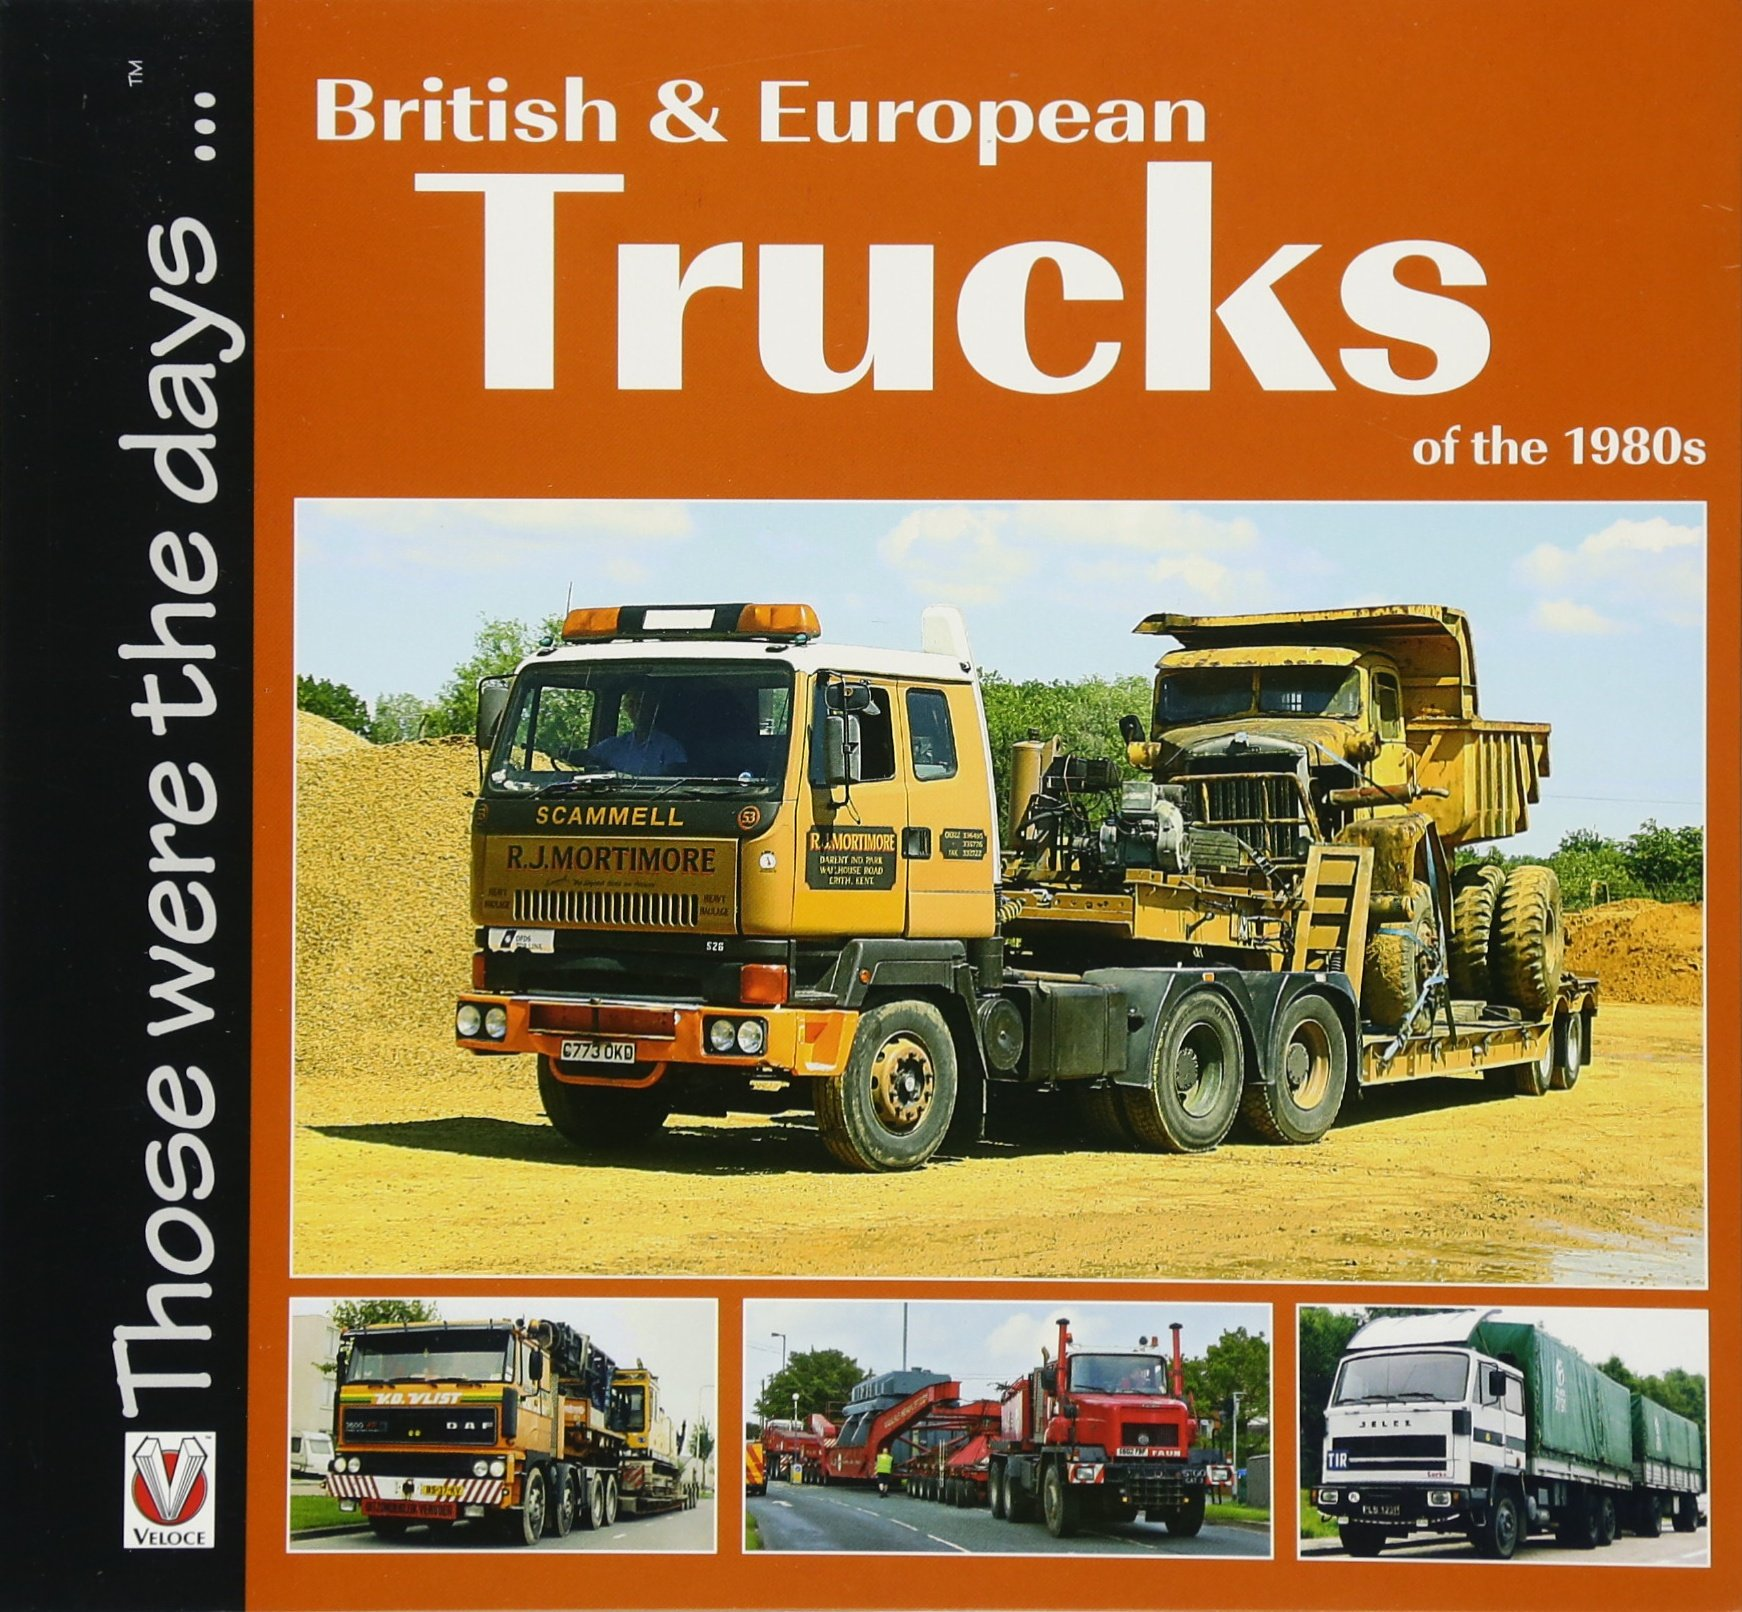 British & European Trucks of the 1980s (Those Were the Days...)